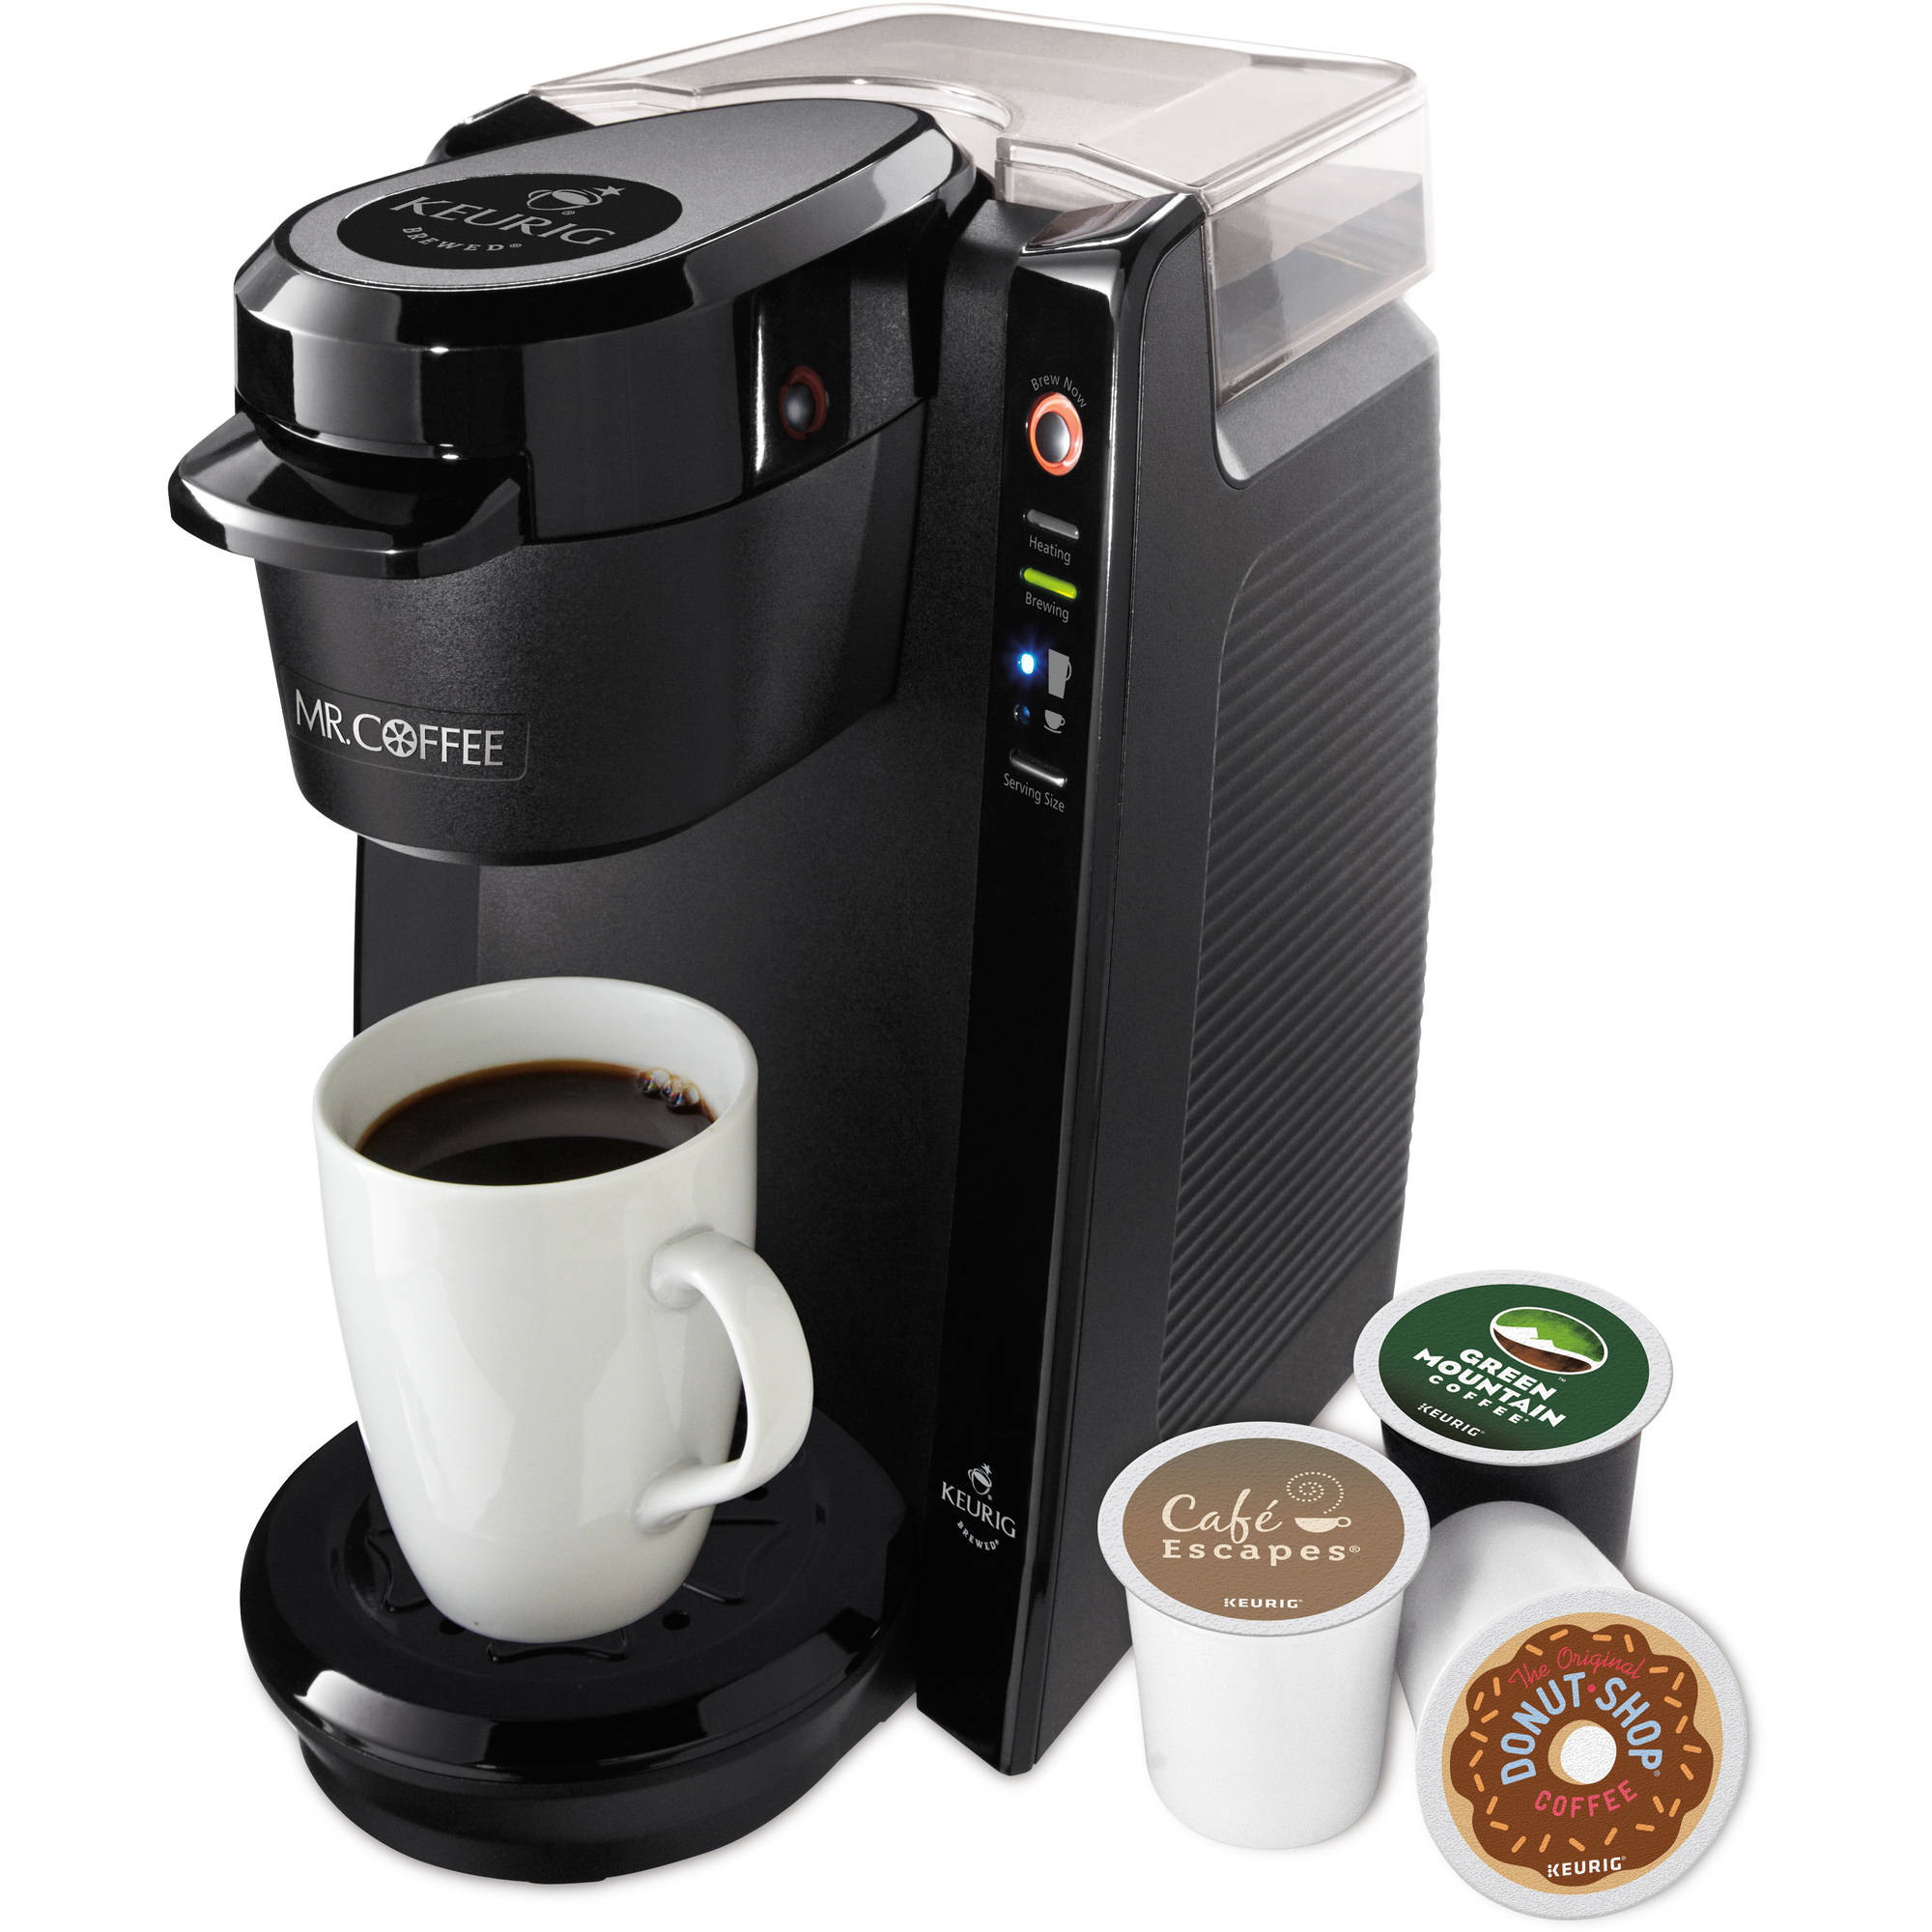 Keurig Mini Coffee Maker Bed Bath And Beyond : Keurig Bed Bath And Beyond Bedding Sets